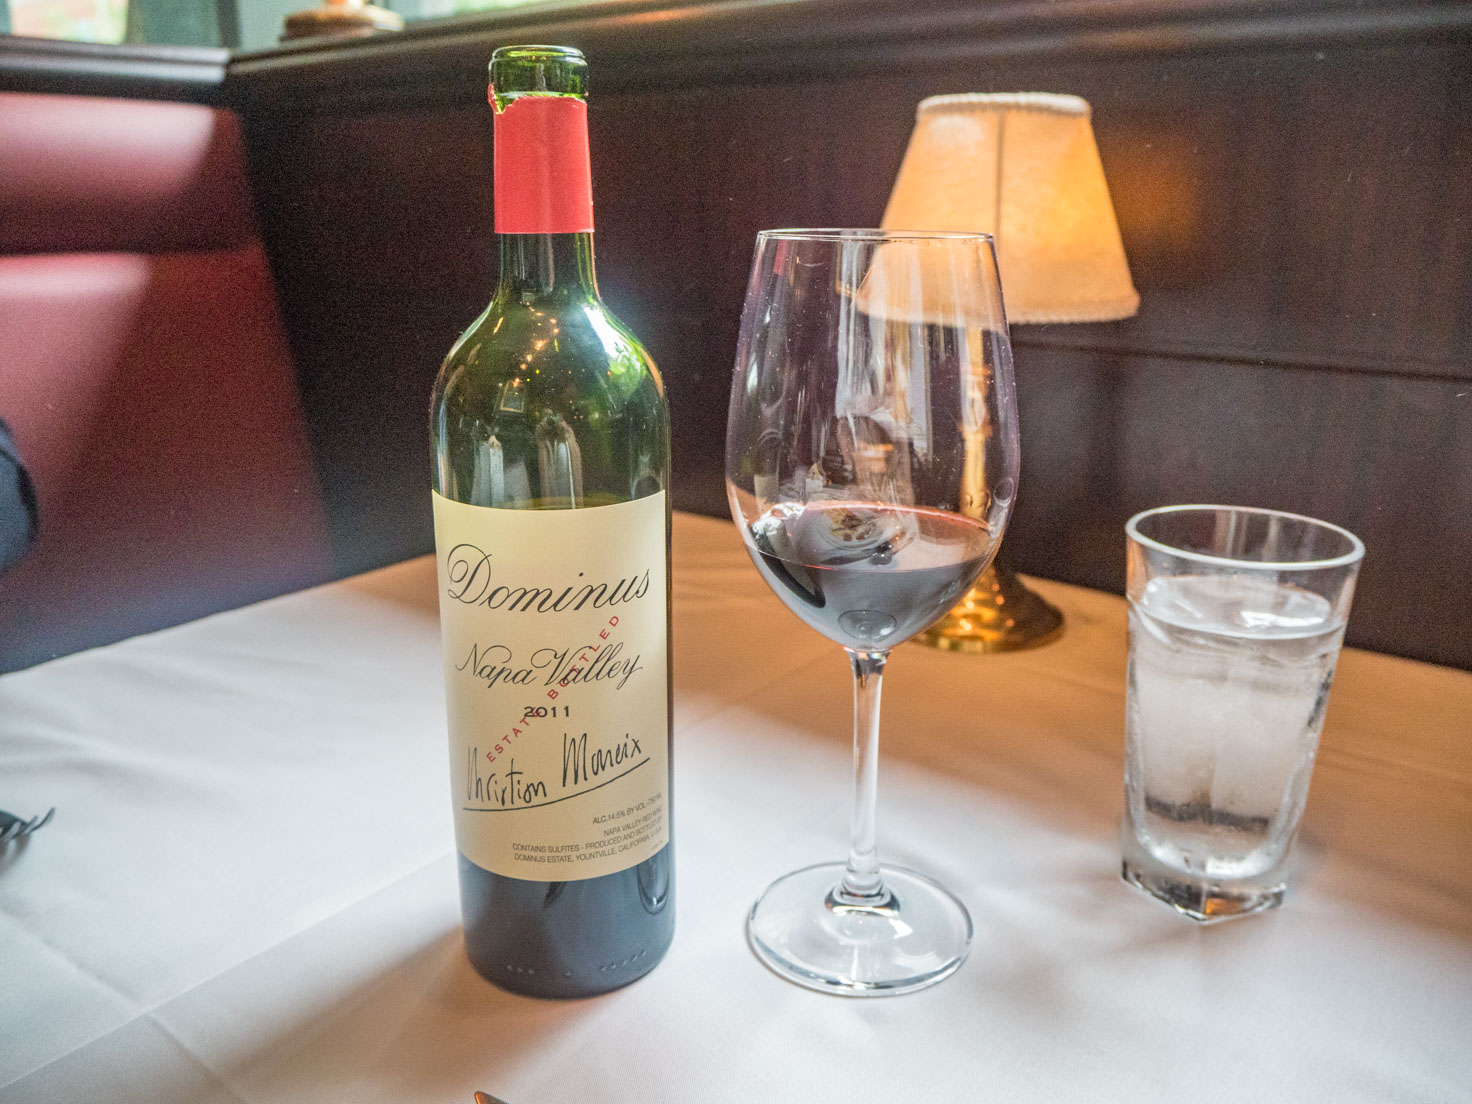 Capital Grille Chicago downtown Napa Valley Dominus red wine